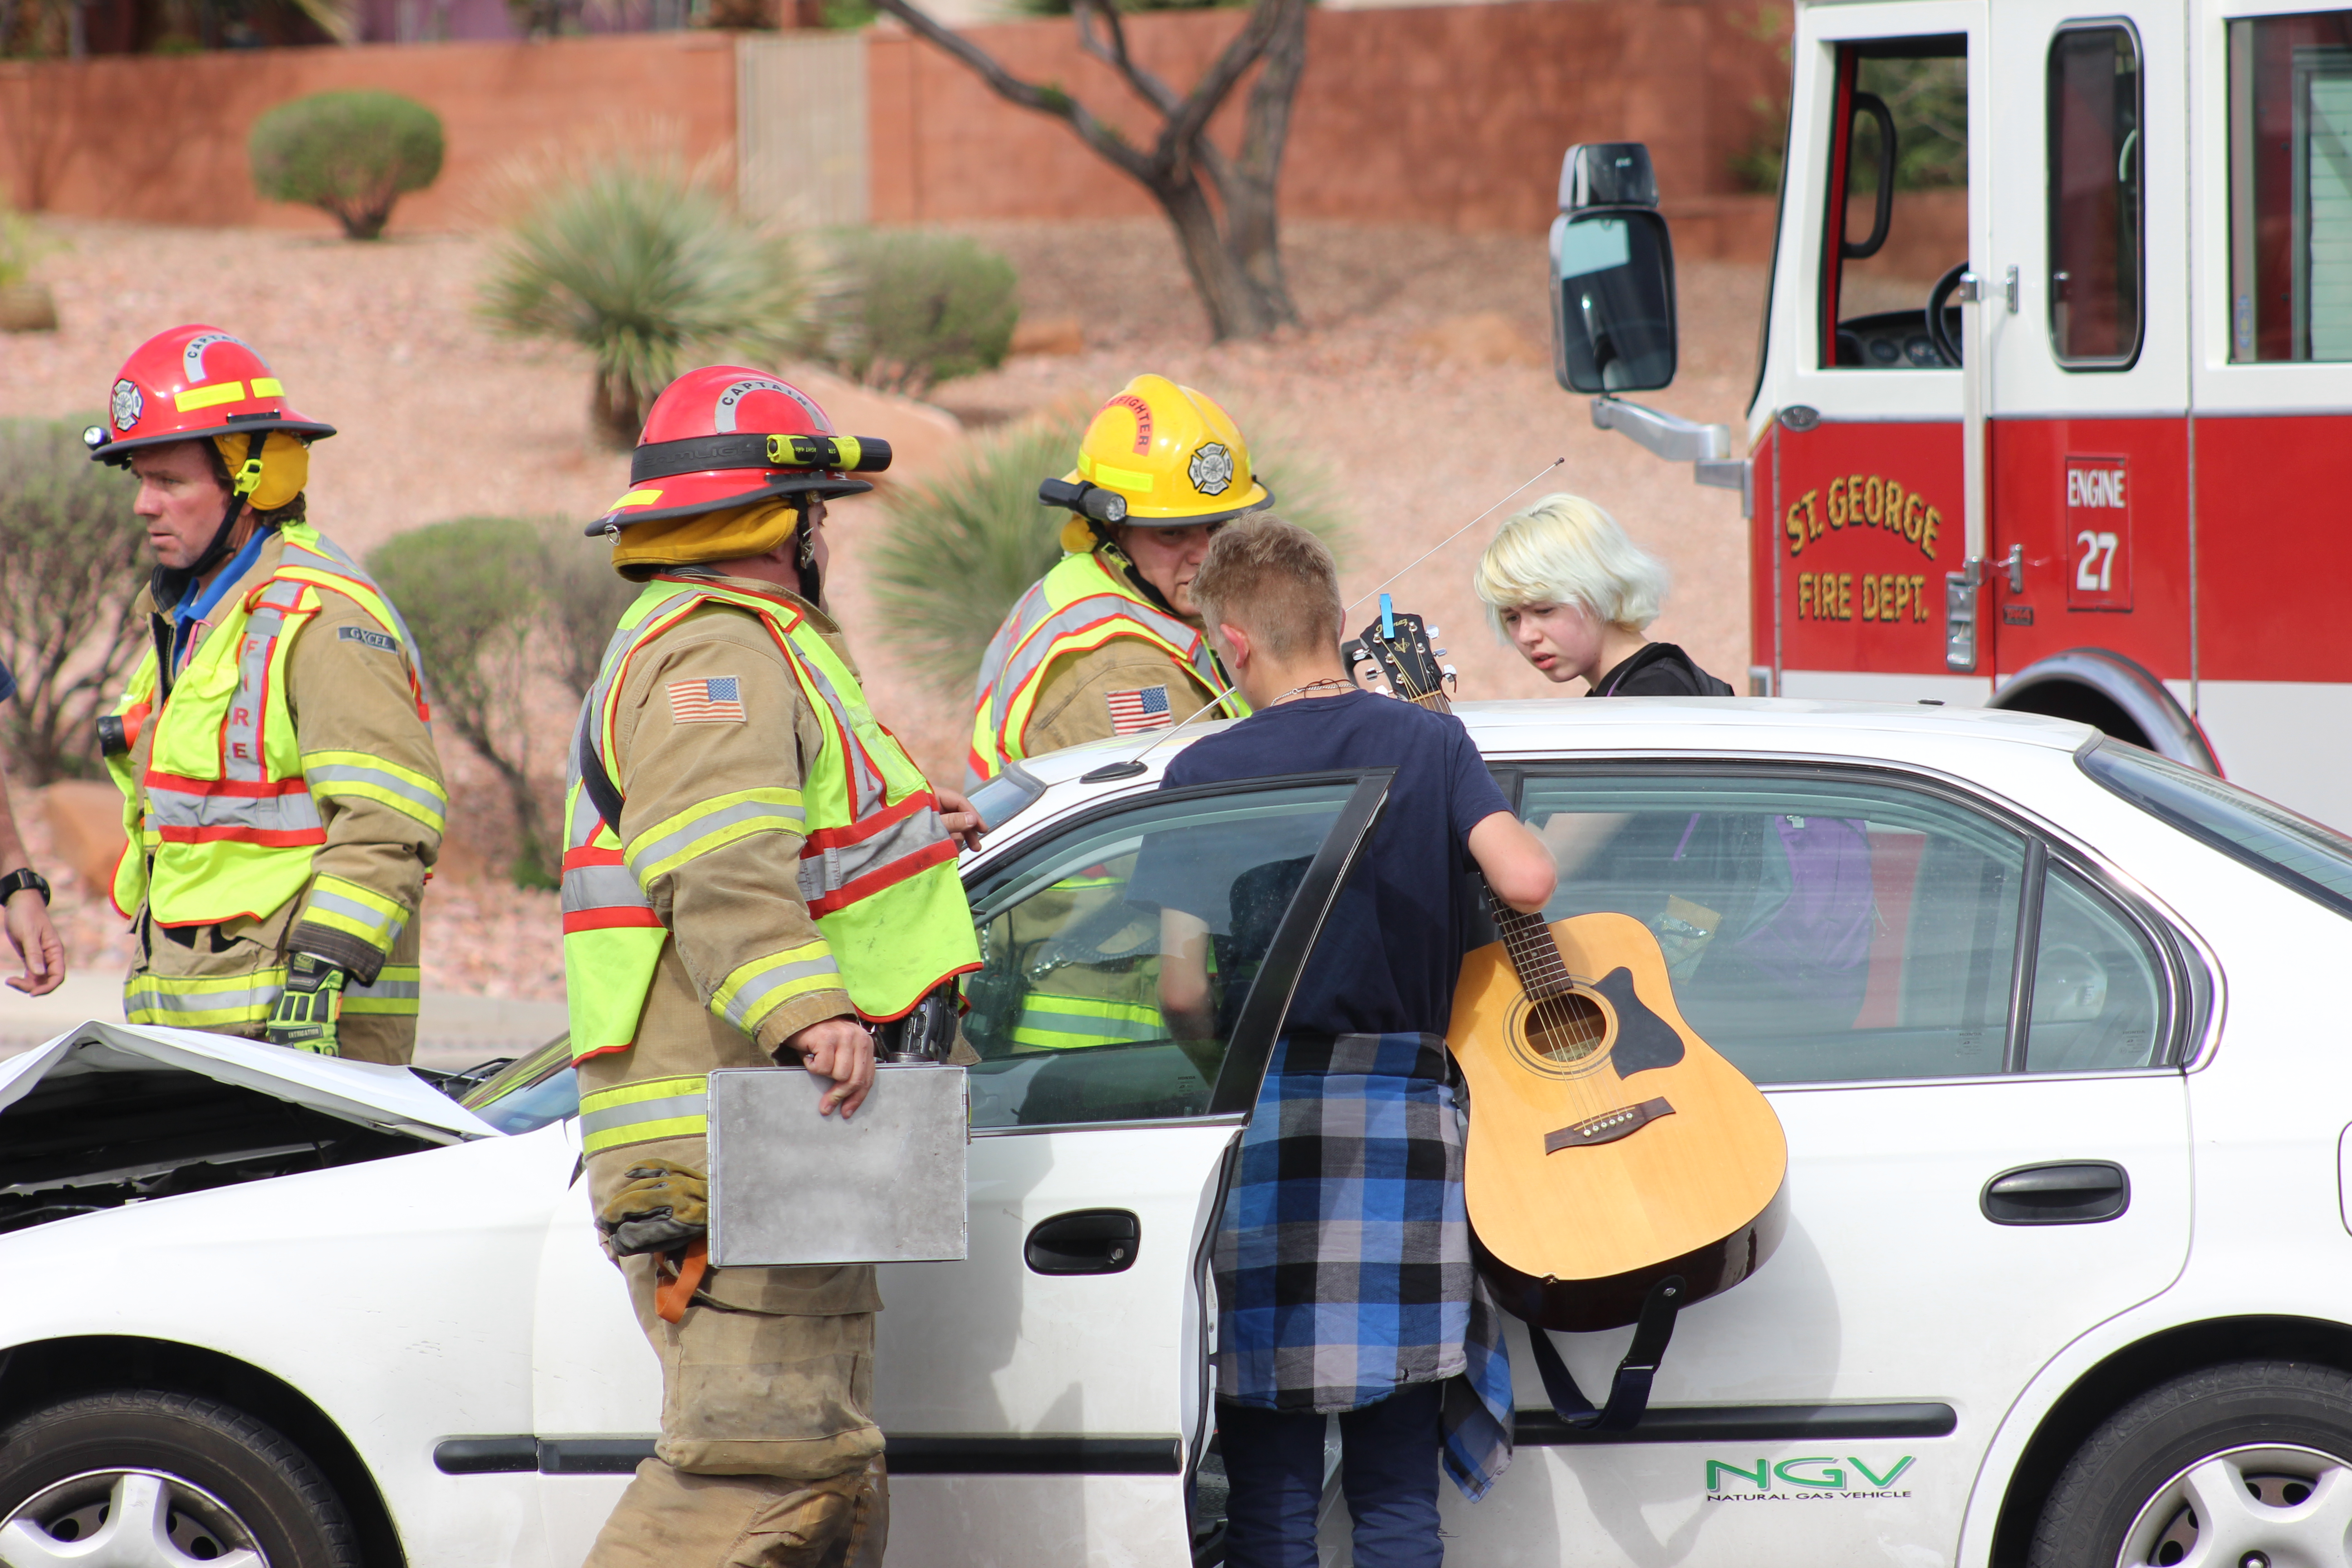 failure to yield leads to wrecked vehicles citation for juvenile driver st george news. Black Bedroom Furniture Sets. Home Design Ideas